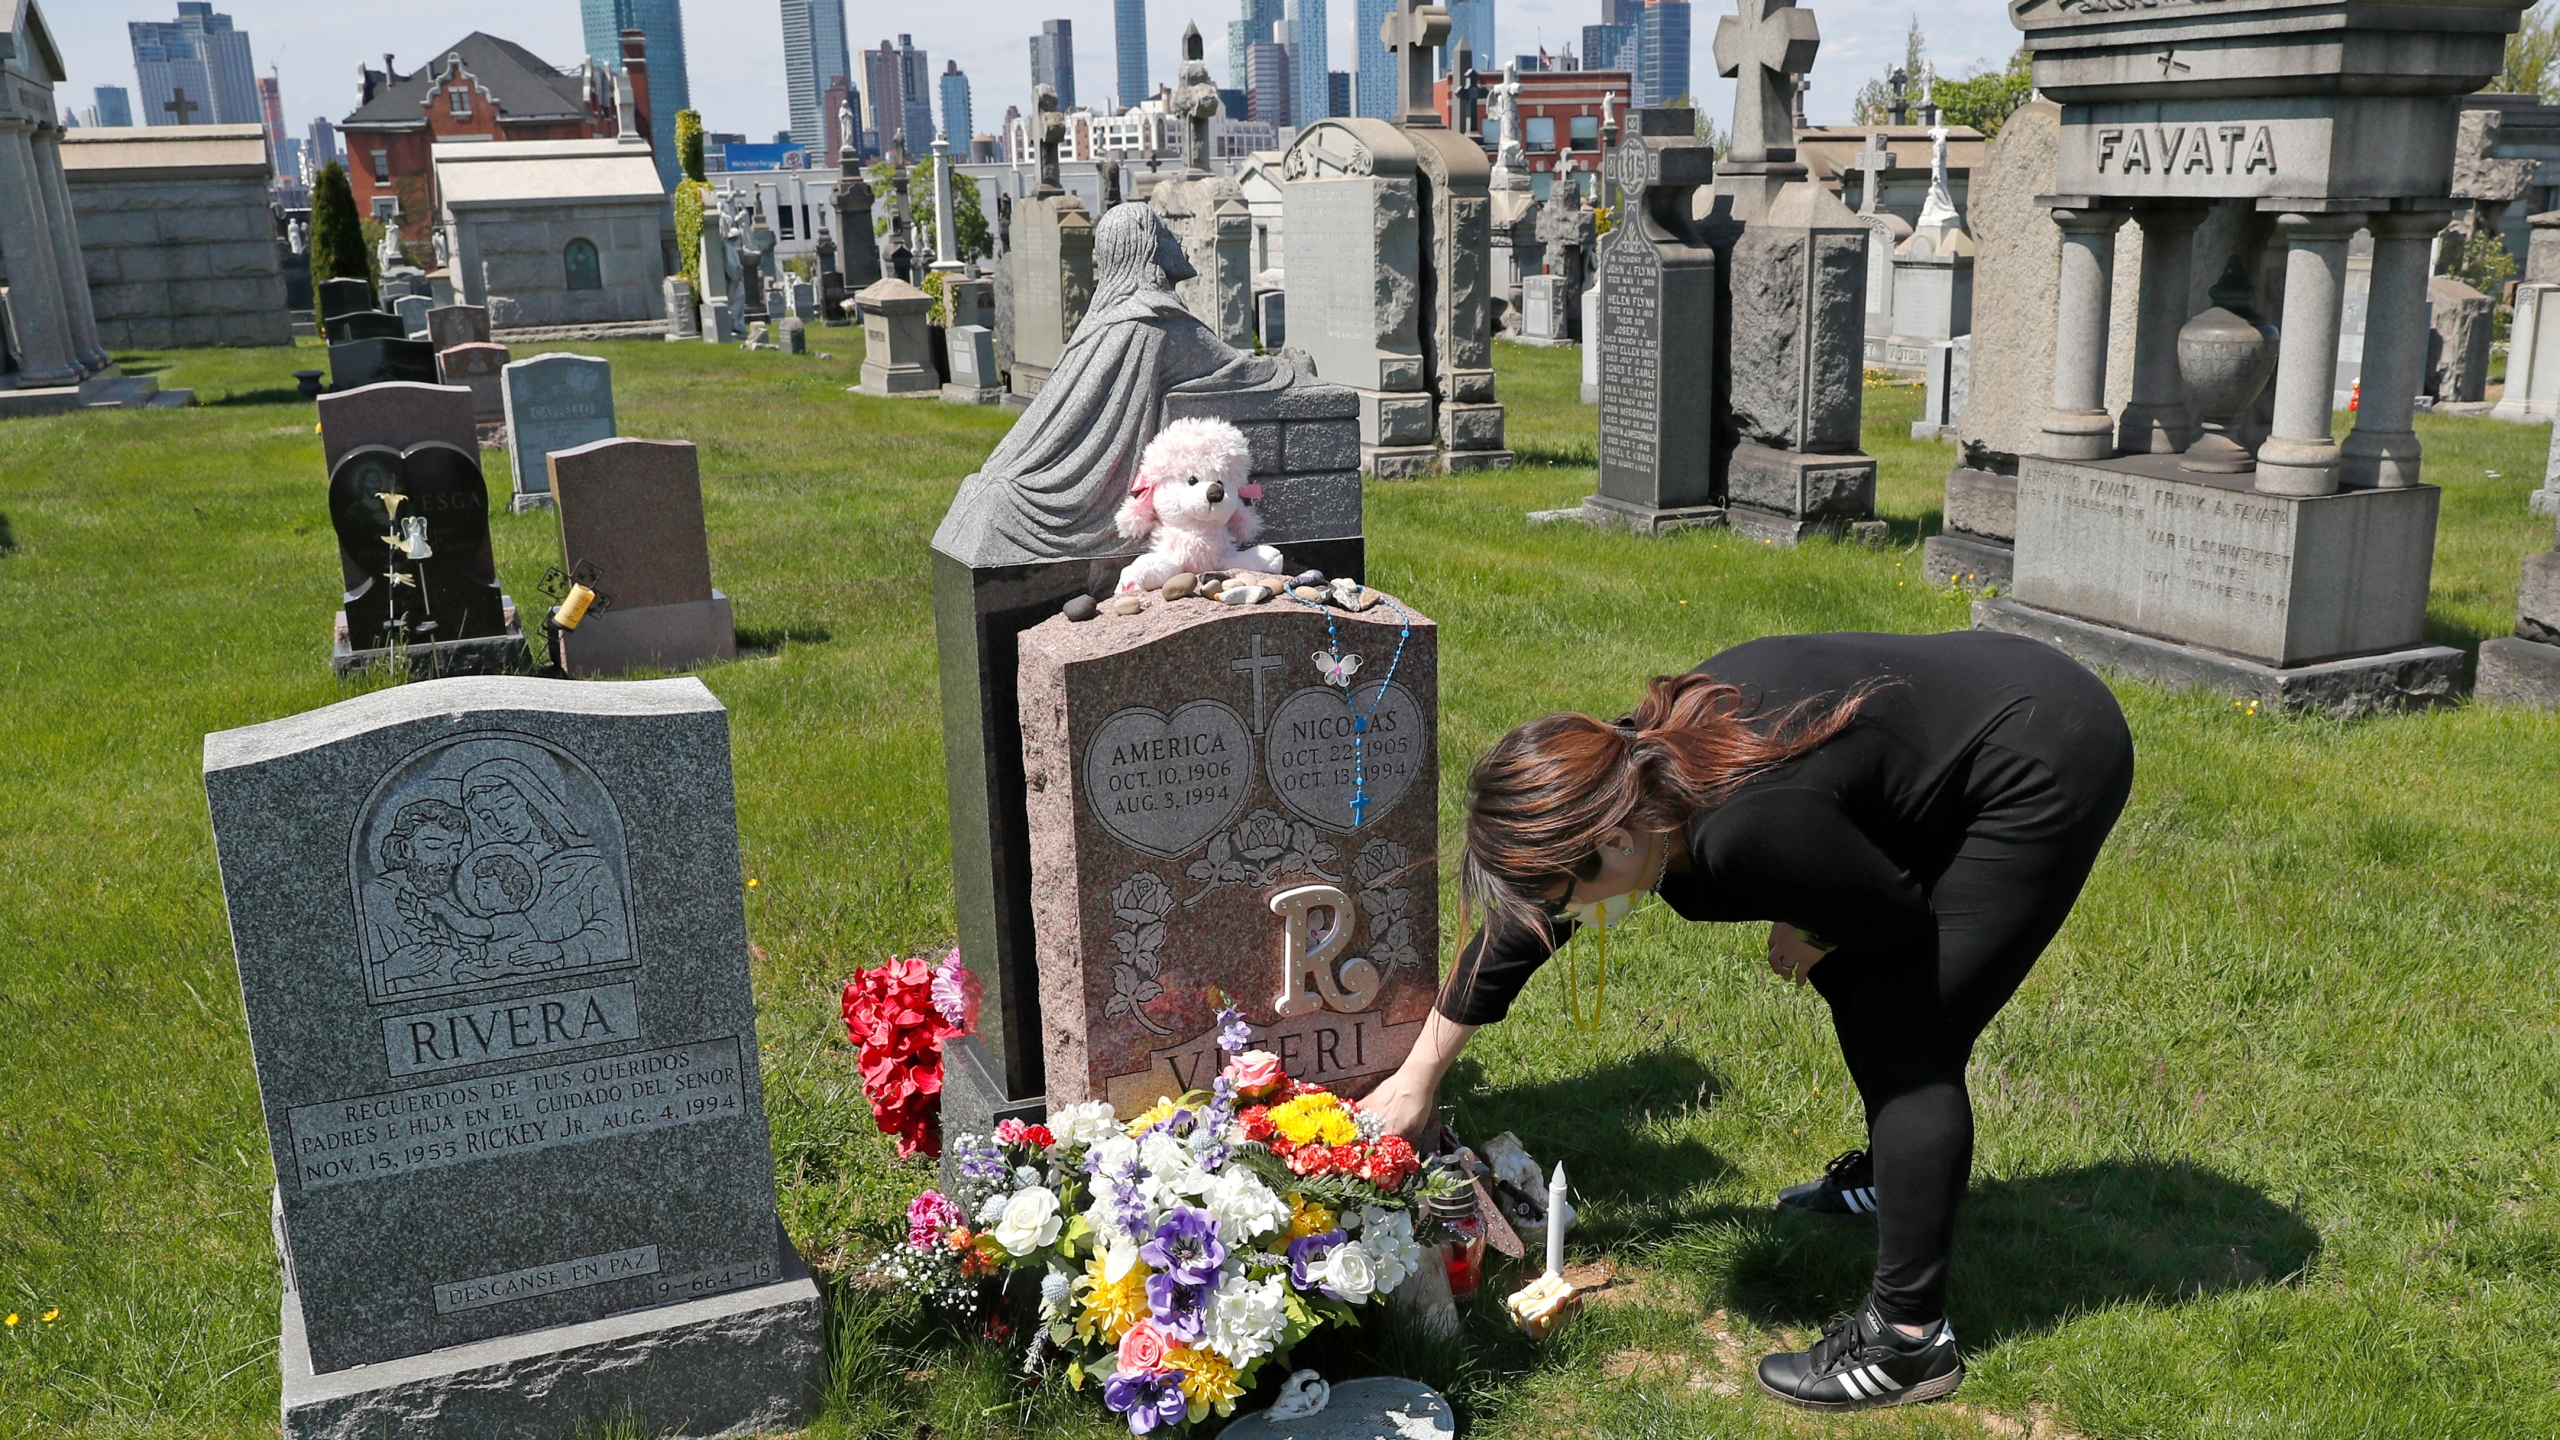 In this Sunday, May 10, 2020 file photo, Sharon Rivera adjusts flowers and other items left at the grave of her daughter, Victoria, at Calvary Cemetery in New York, on Mother's Day. Victoria died of a drug overdose in Sept. 22, 2019, when she just 21 years old. According to a report released by the Centers for Disease Control and Prevention on Wednesday, July 14, 2021, drug overdose deaths soared to a record 93,000 last year in the midst of the COVID-19 pandemic. (AP Photo/Kathy Willens, File)